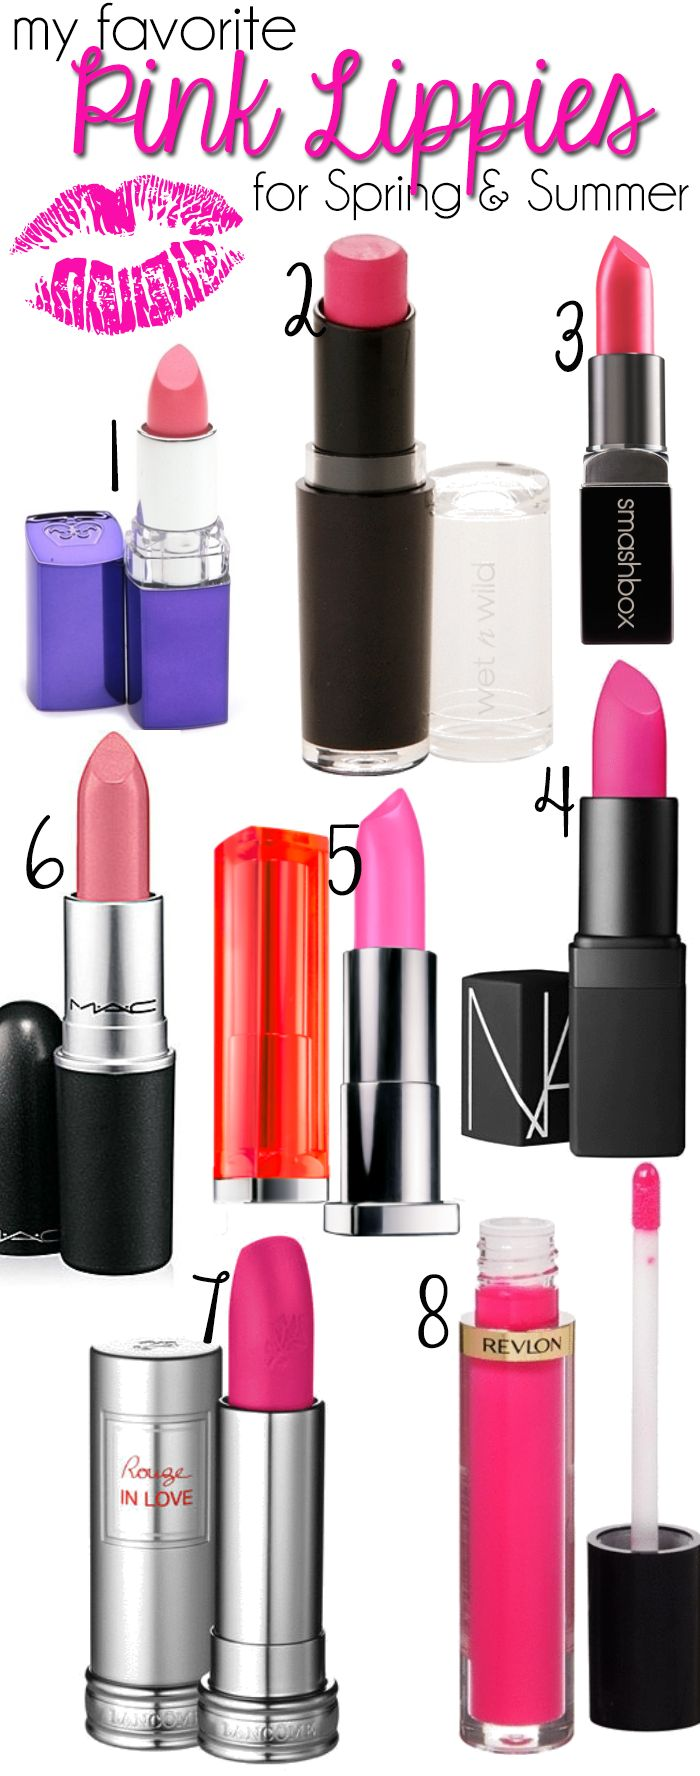 The Best Pink Lipsticks! #makeup #lippies #beauty